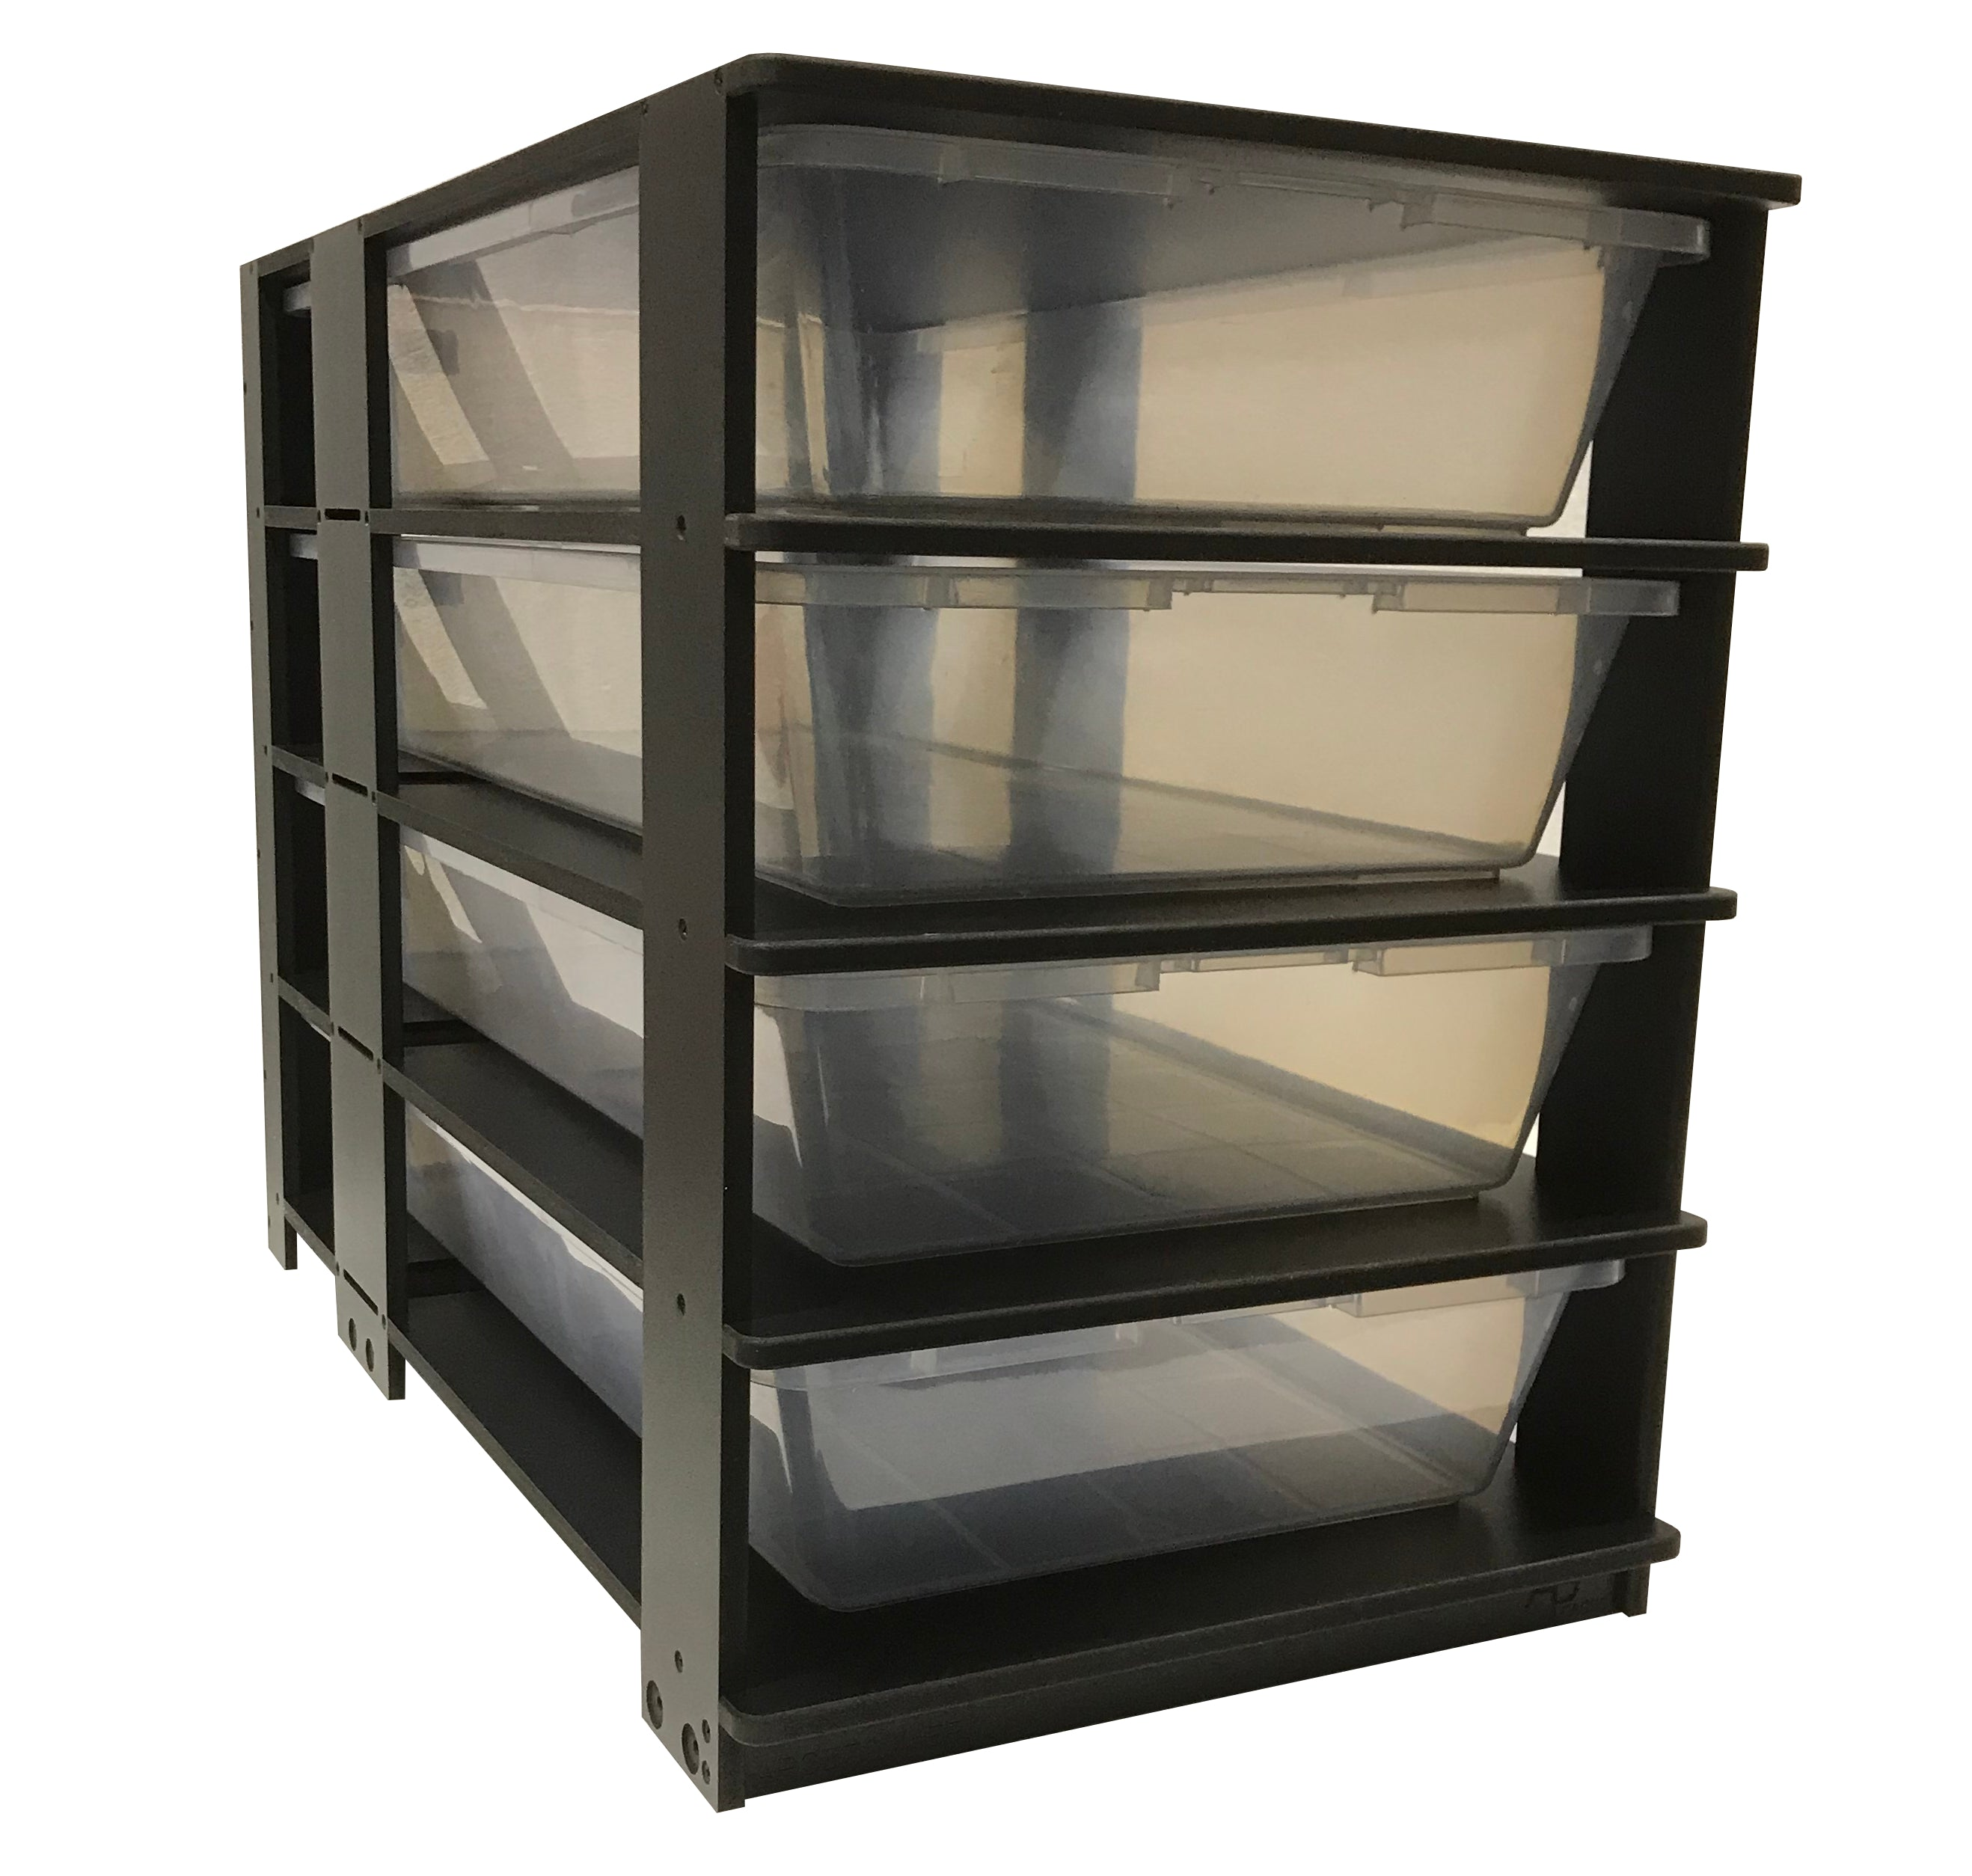 Ap Cb70 Economy 9 Shelves High Overstock Animal Plastics Get the best deal for animals plastic home storage boxes from the largest online selection at ebay.com. ap cb70 economy 9 shelves high overstock